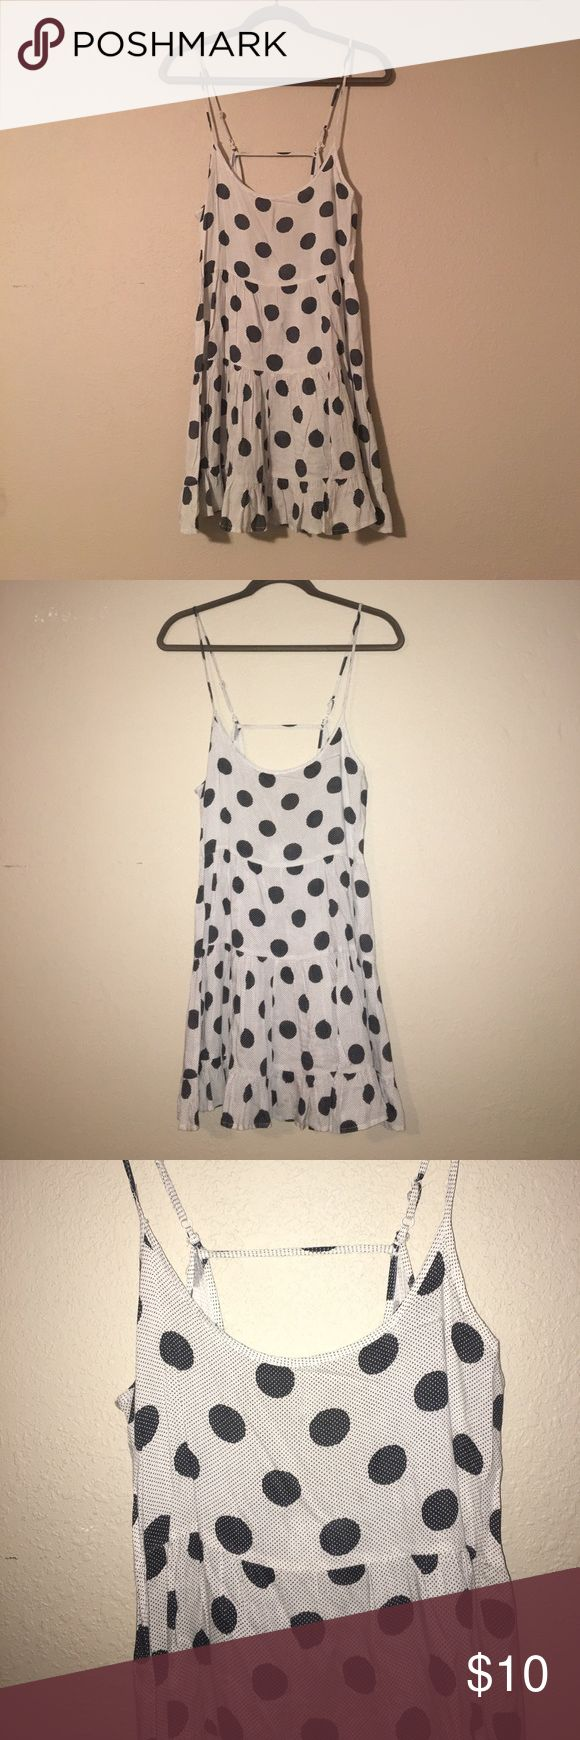 Polka Dot Nordstrom Dress Nordstrom BP polka dot dress that can be worn as a swing dress, tank, tunic, or slip. Adjustable straps. Light and flirty fun. Great for festival. Looks great with bralettes. bp Dresses Mini